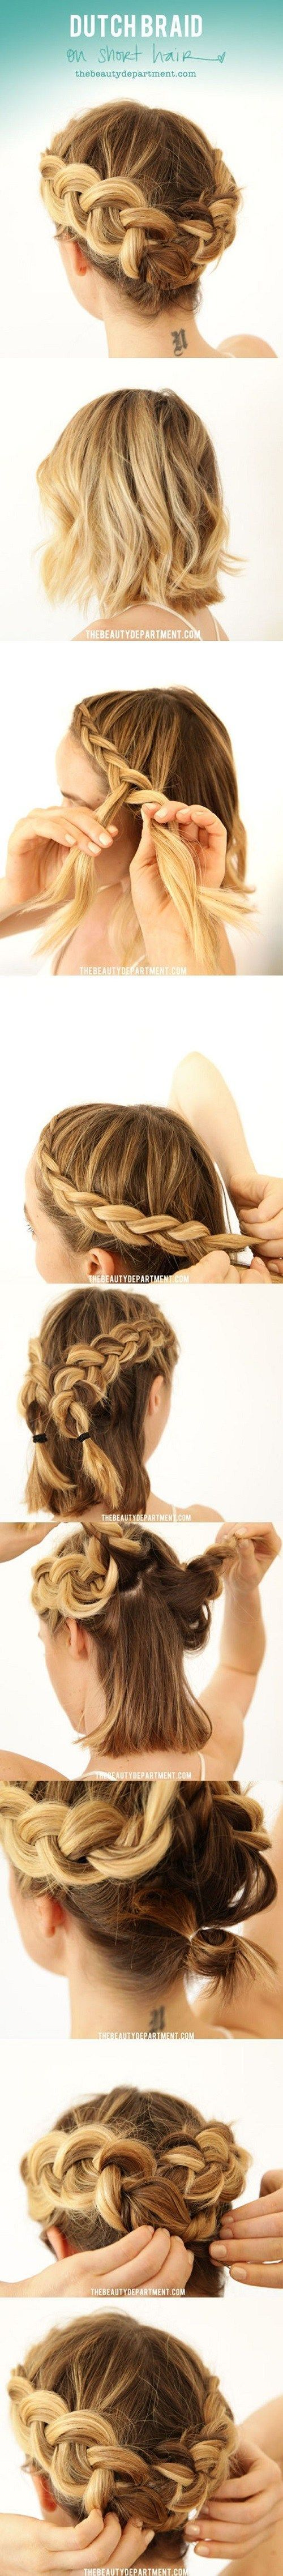 Crown Braid For Bob Length Hair Tutorial http://therighthairstyles.com/hair-tutorials-diy/